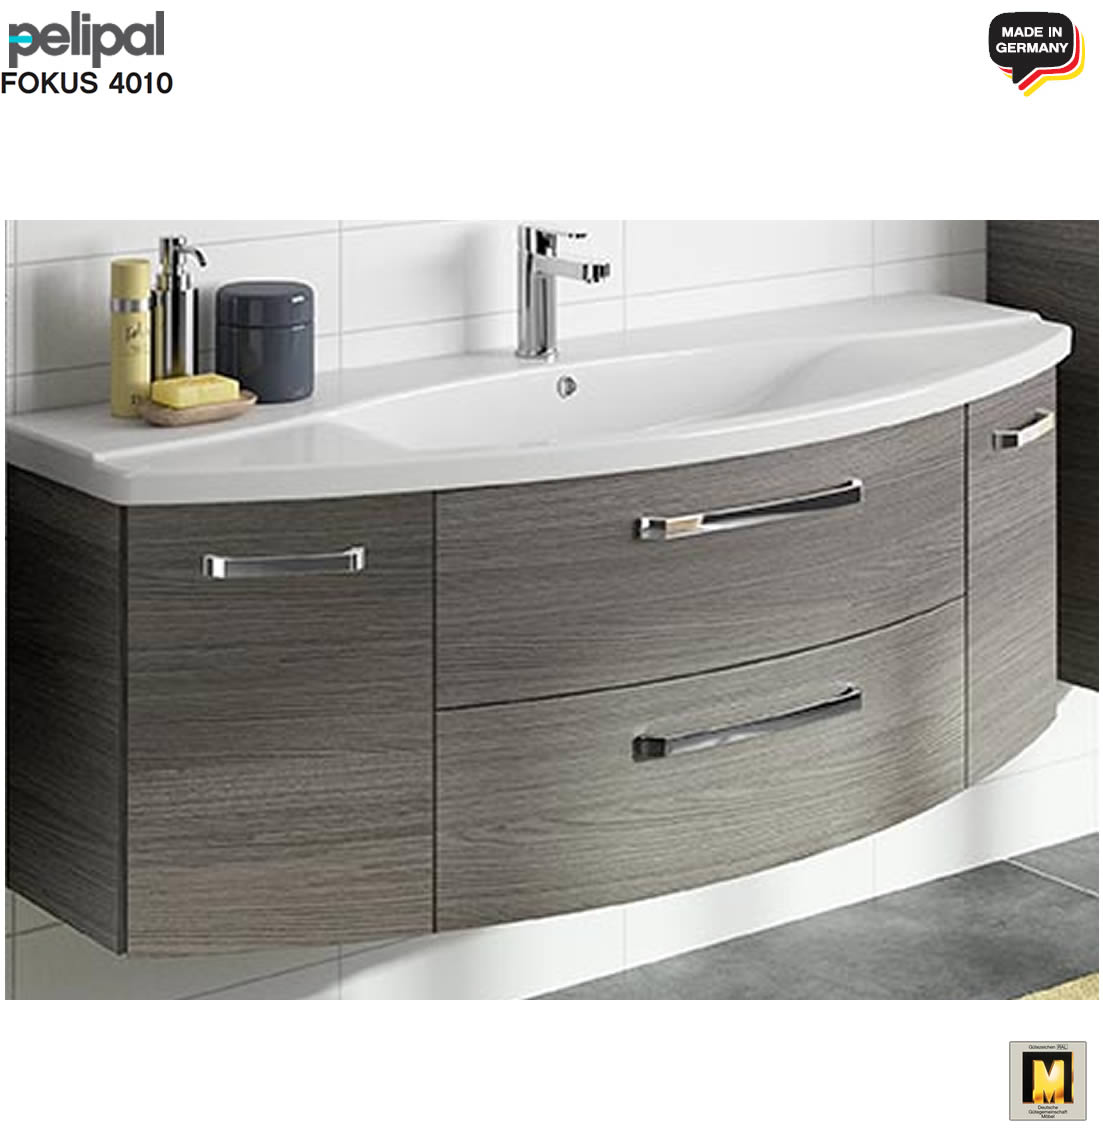 pelipal fokus 4010 waschtisch set 2tlg 144 cm mit keramik waschtisch v2 2 impuls home. Black Bedroom Furniture Sets. Home Design Ideas